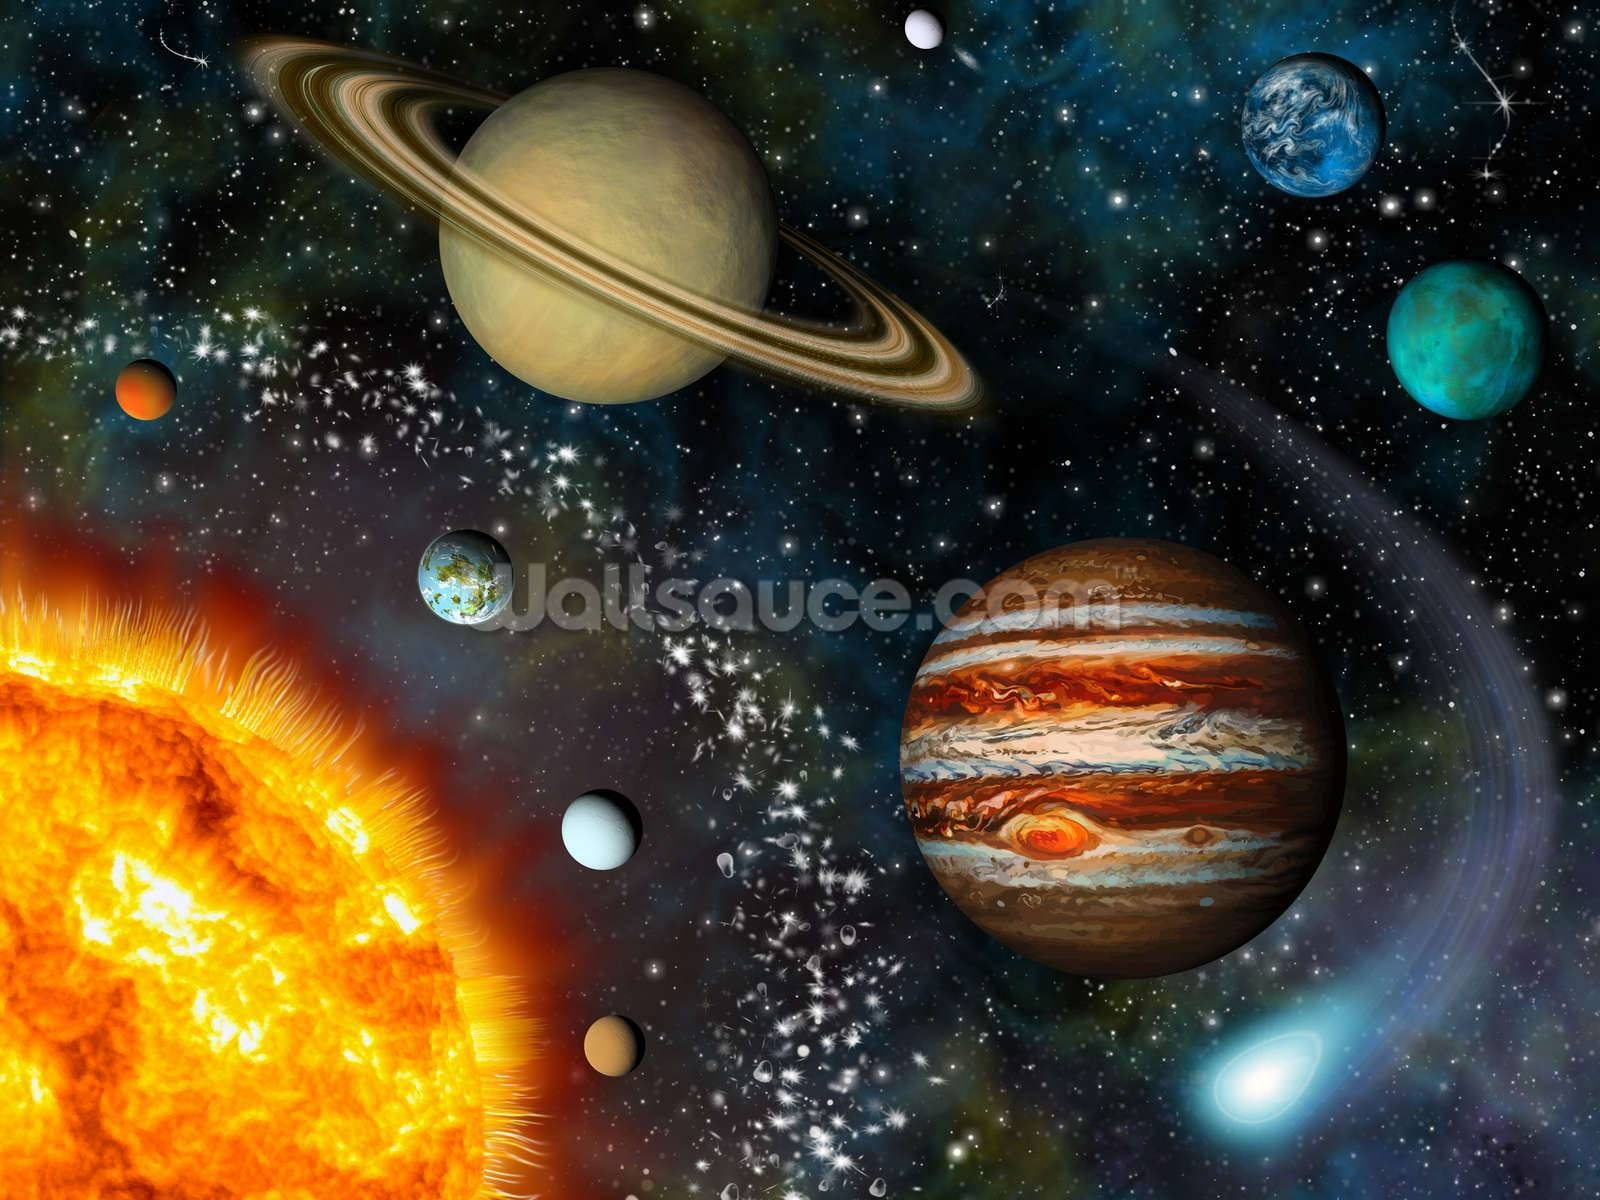 3d Solar System Wallpaper Wall Mural | Wallsauce Usa For Most Current 3d Solar System Wall Art Decor (View 9 of 20)